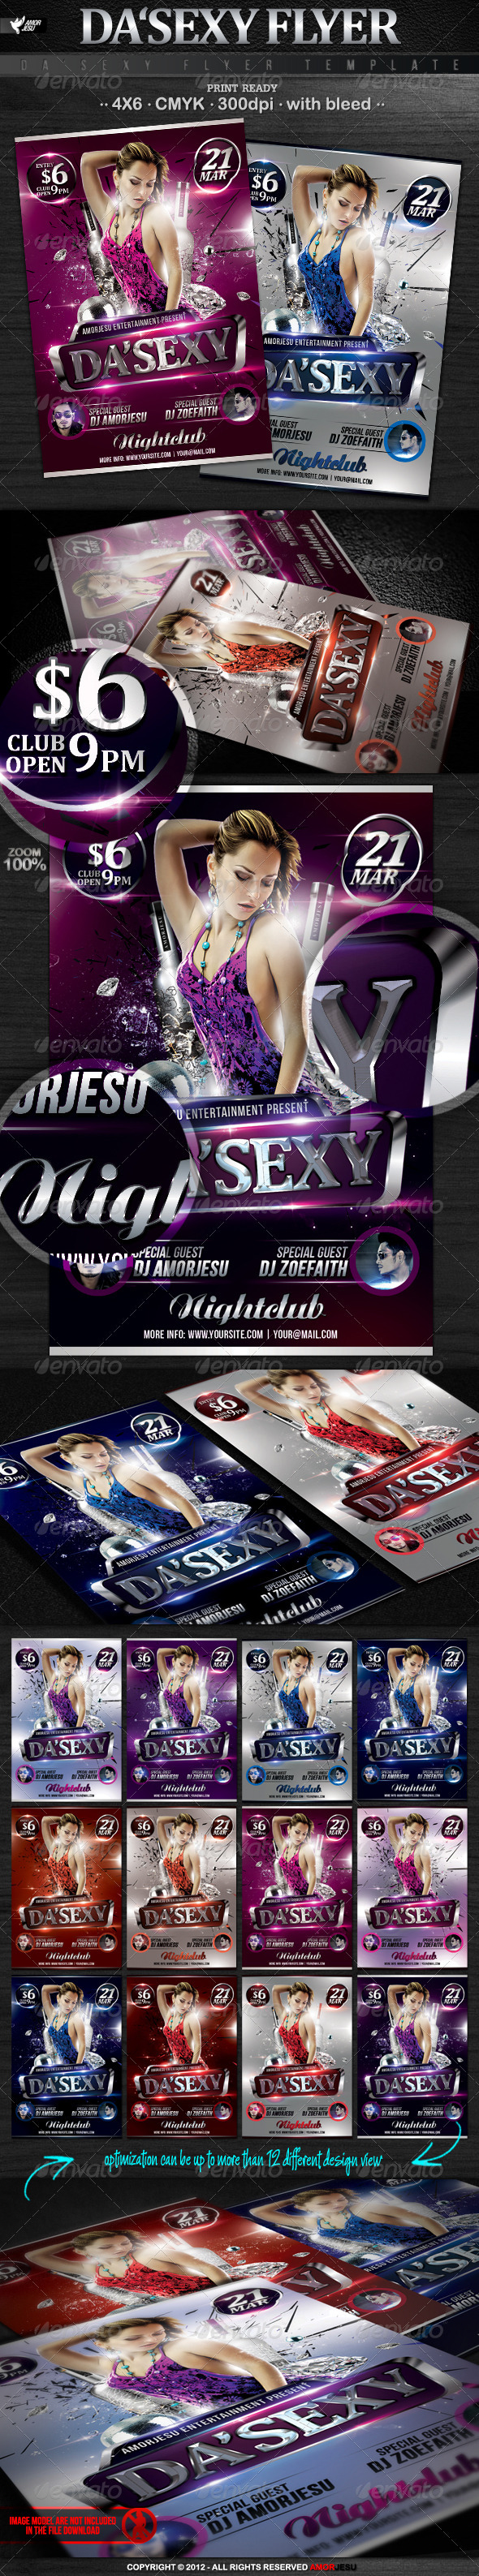 Da Sexy Flyer Template - Events Flyers